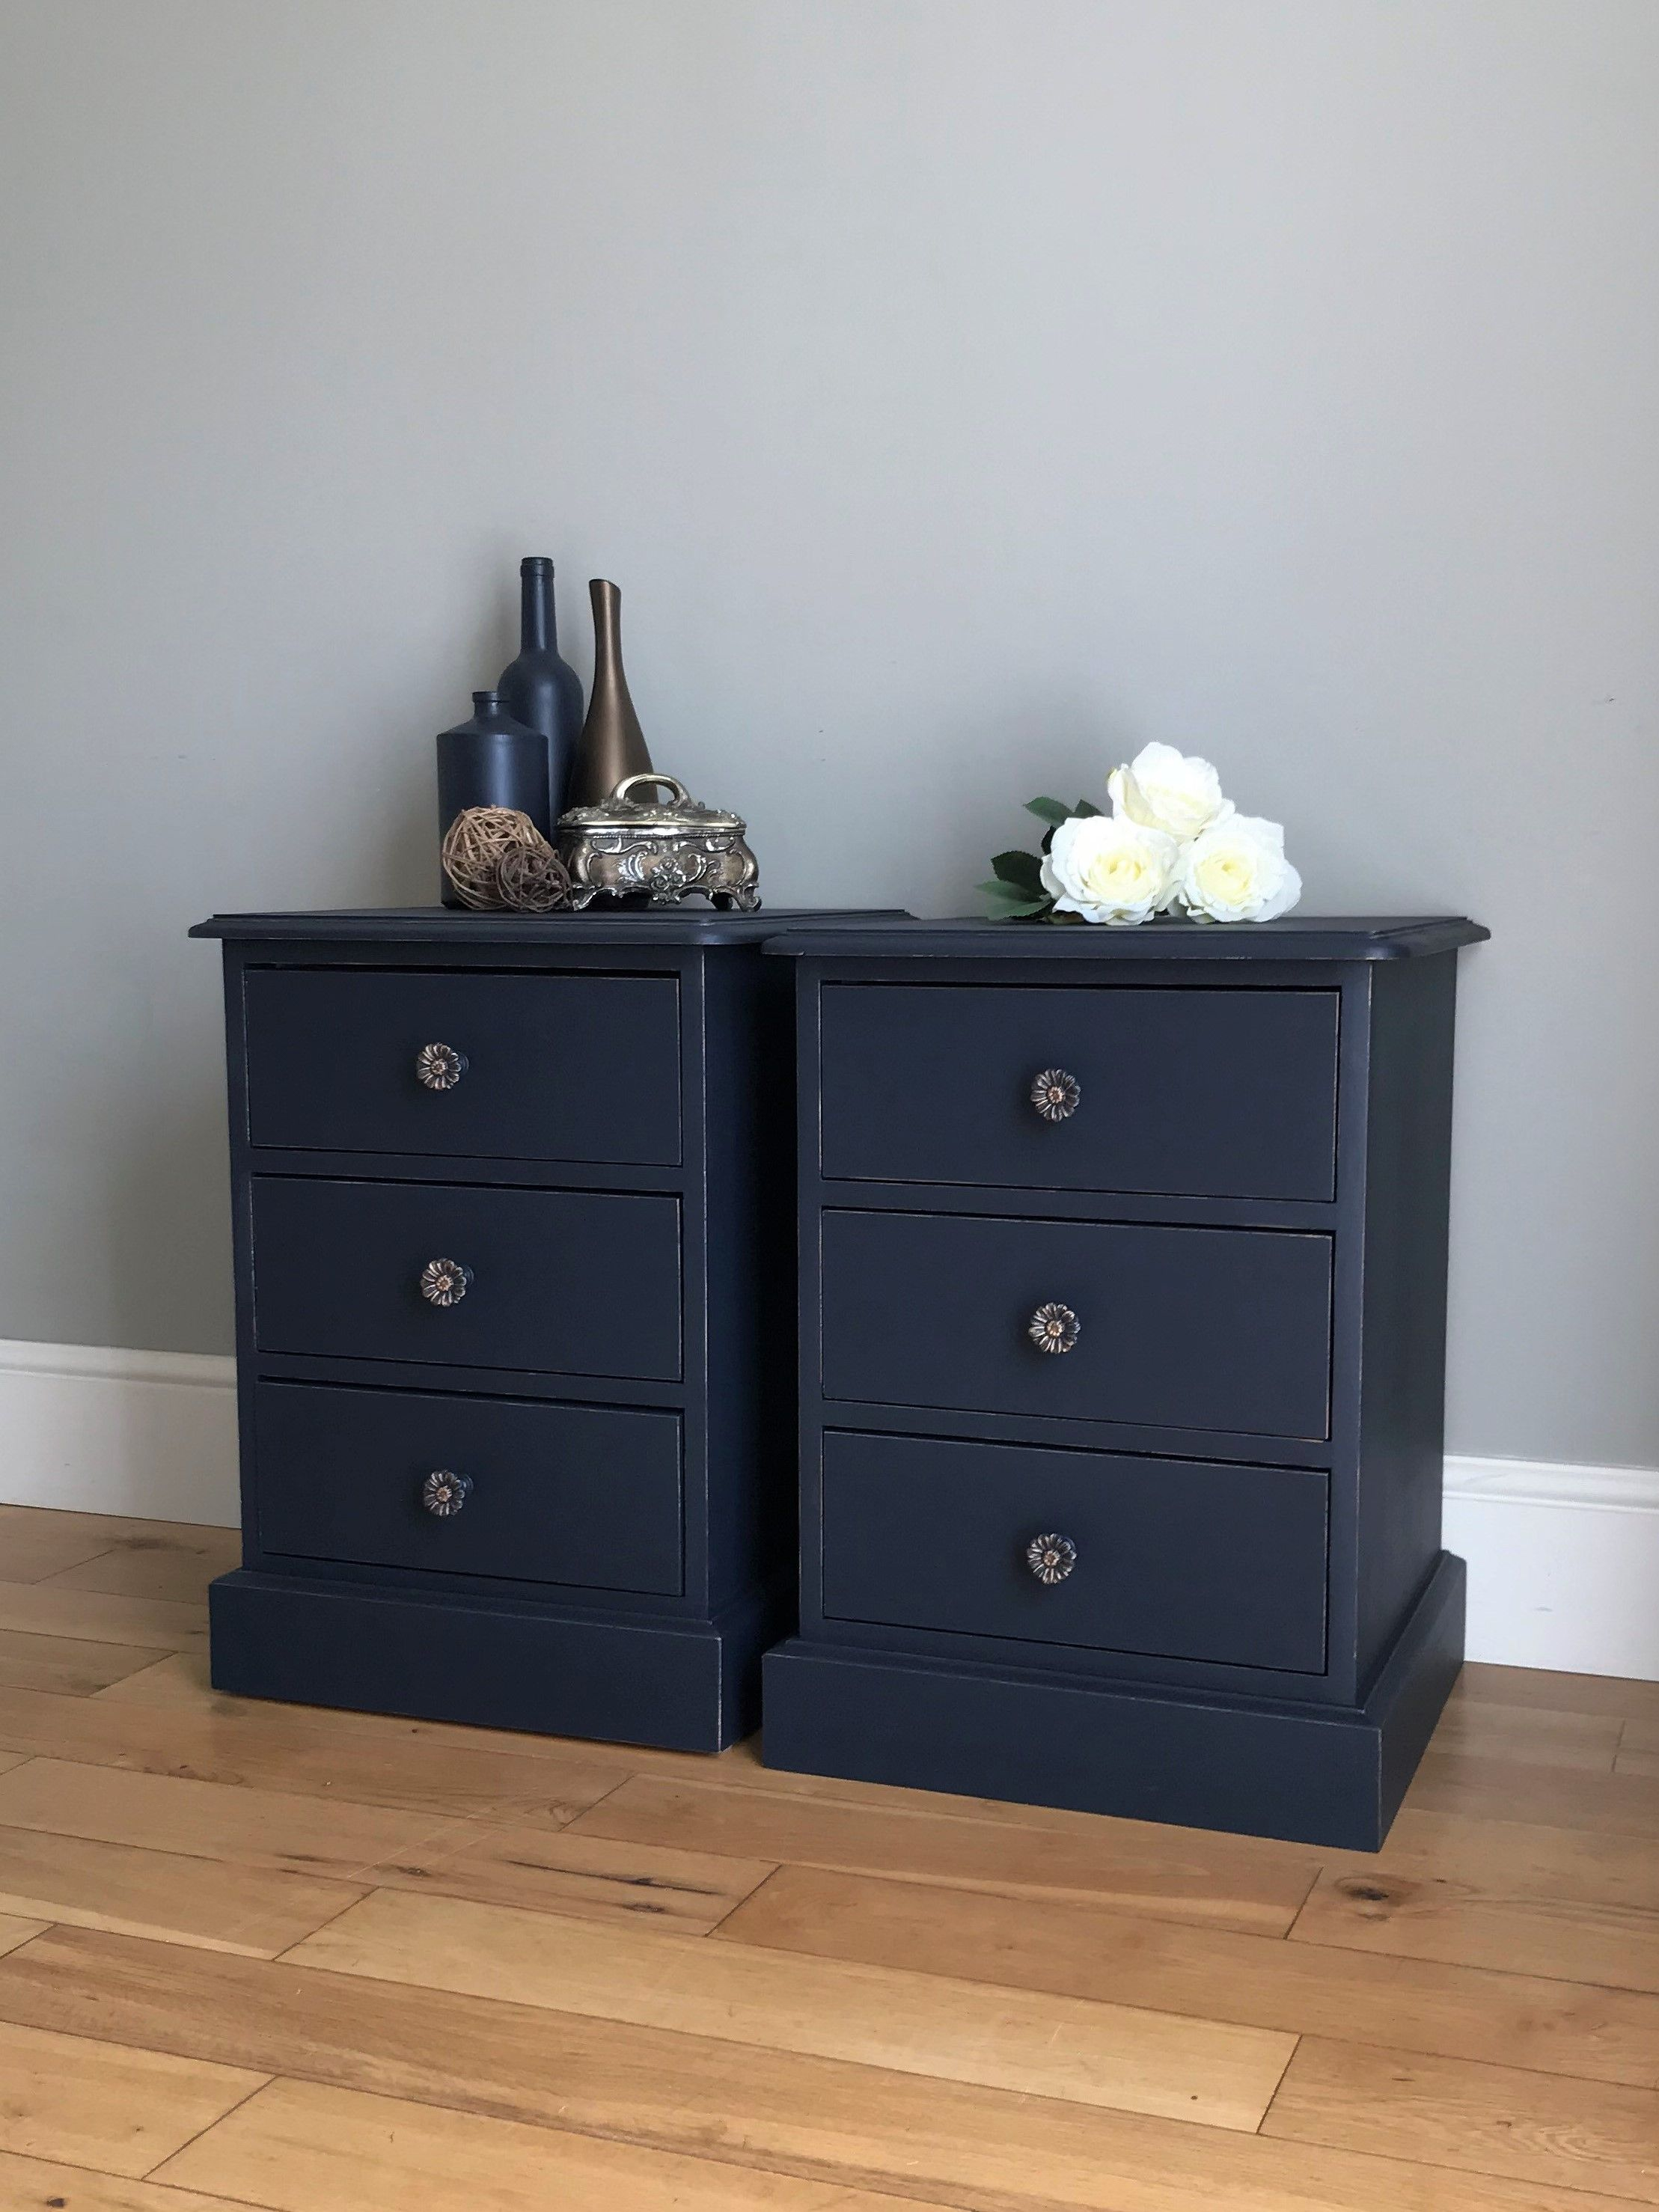 Pin On Painted Bedside Tables